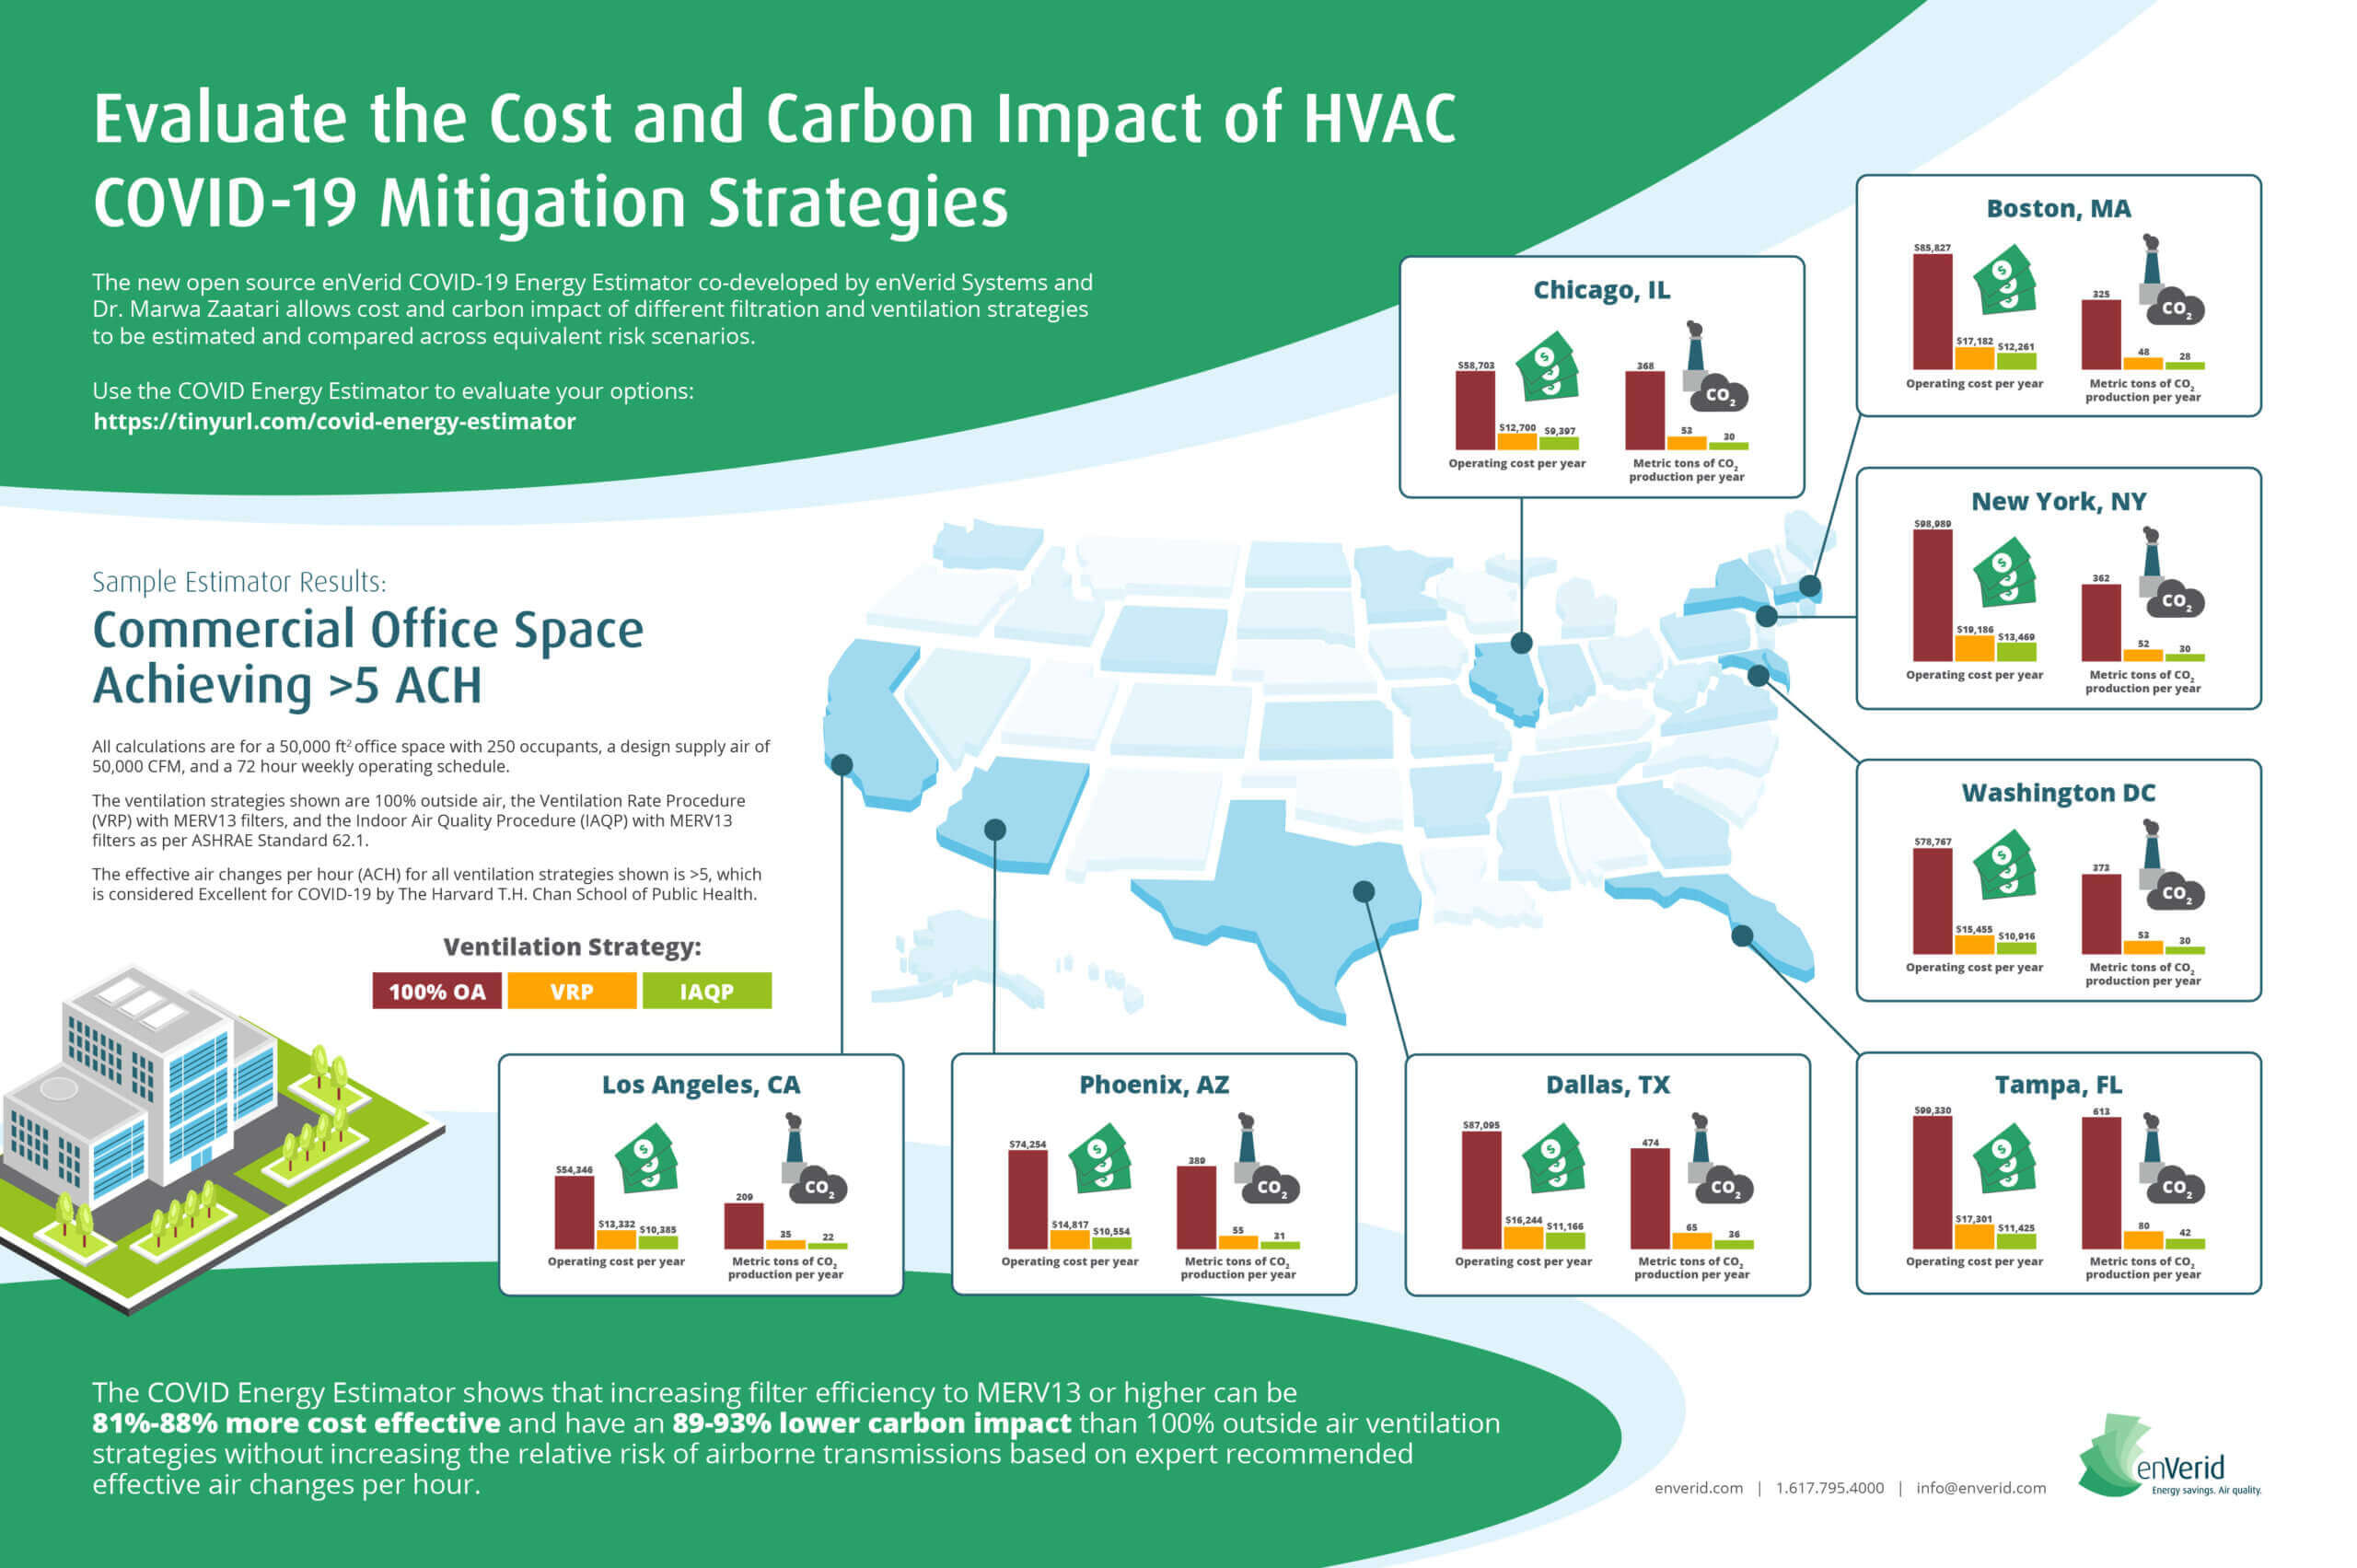 enVerid COVID-19 Energy Estimator Infographic